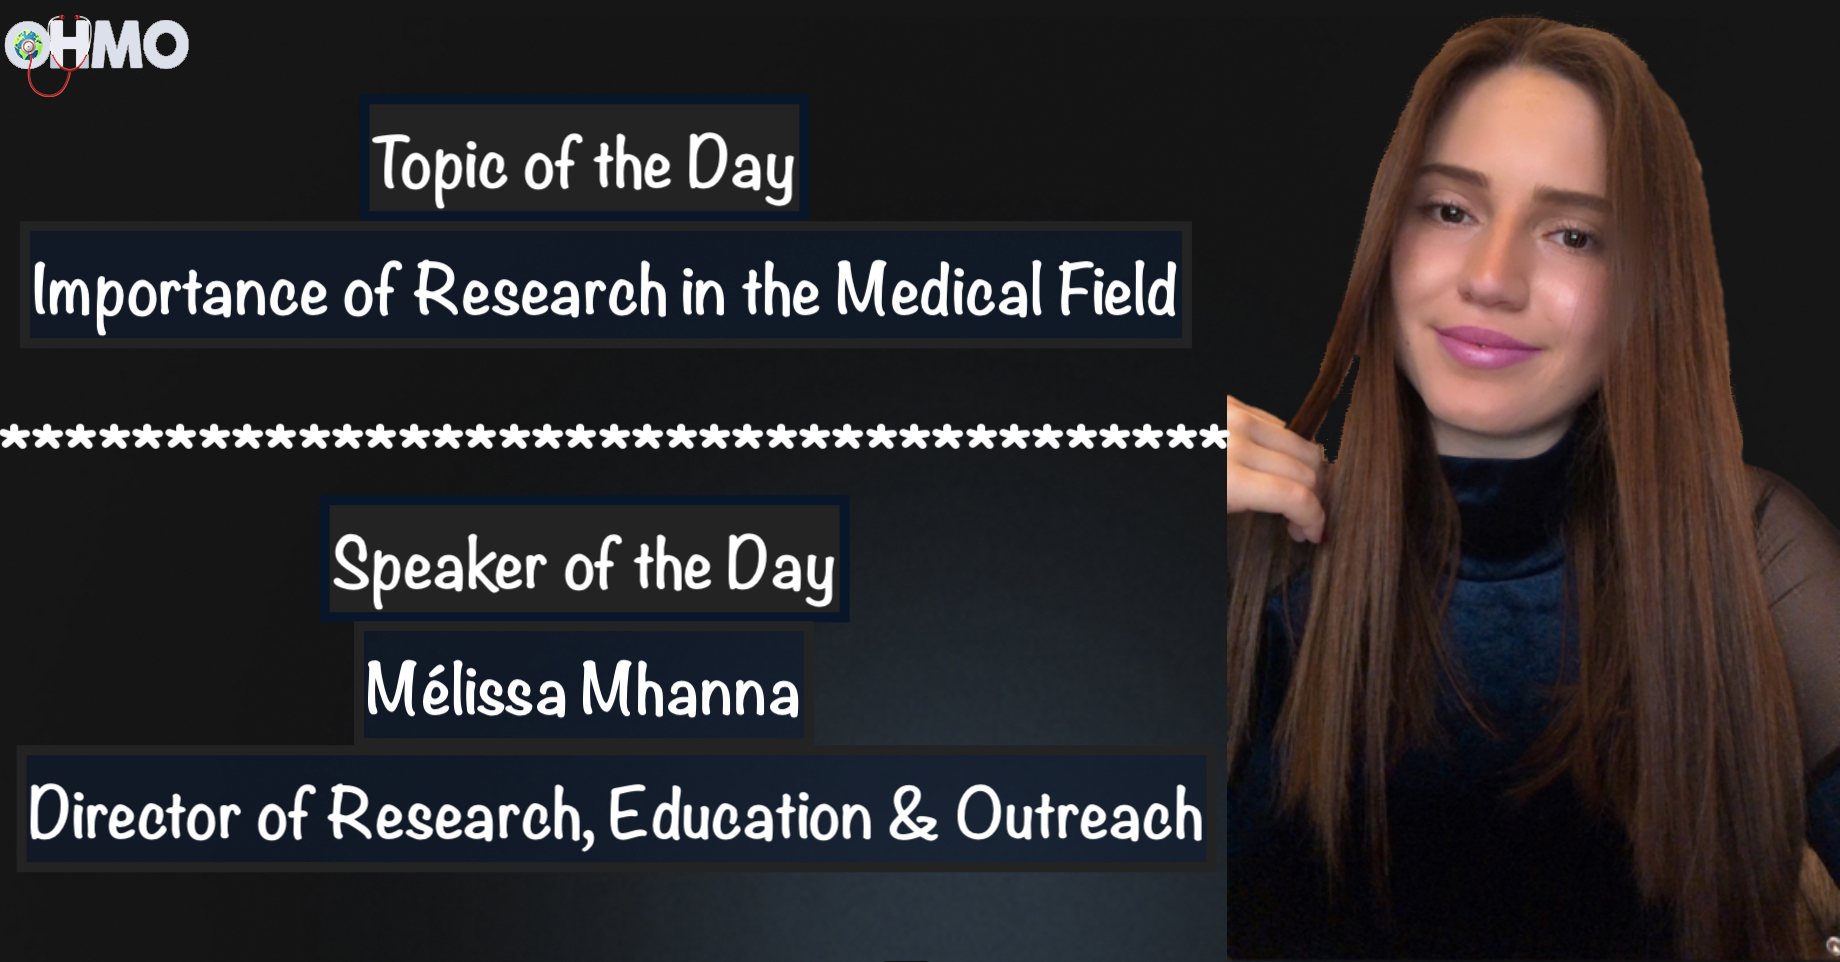 Importance of Research in the Medical Field